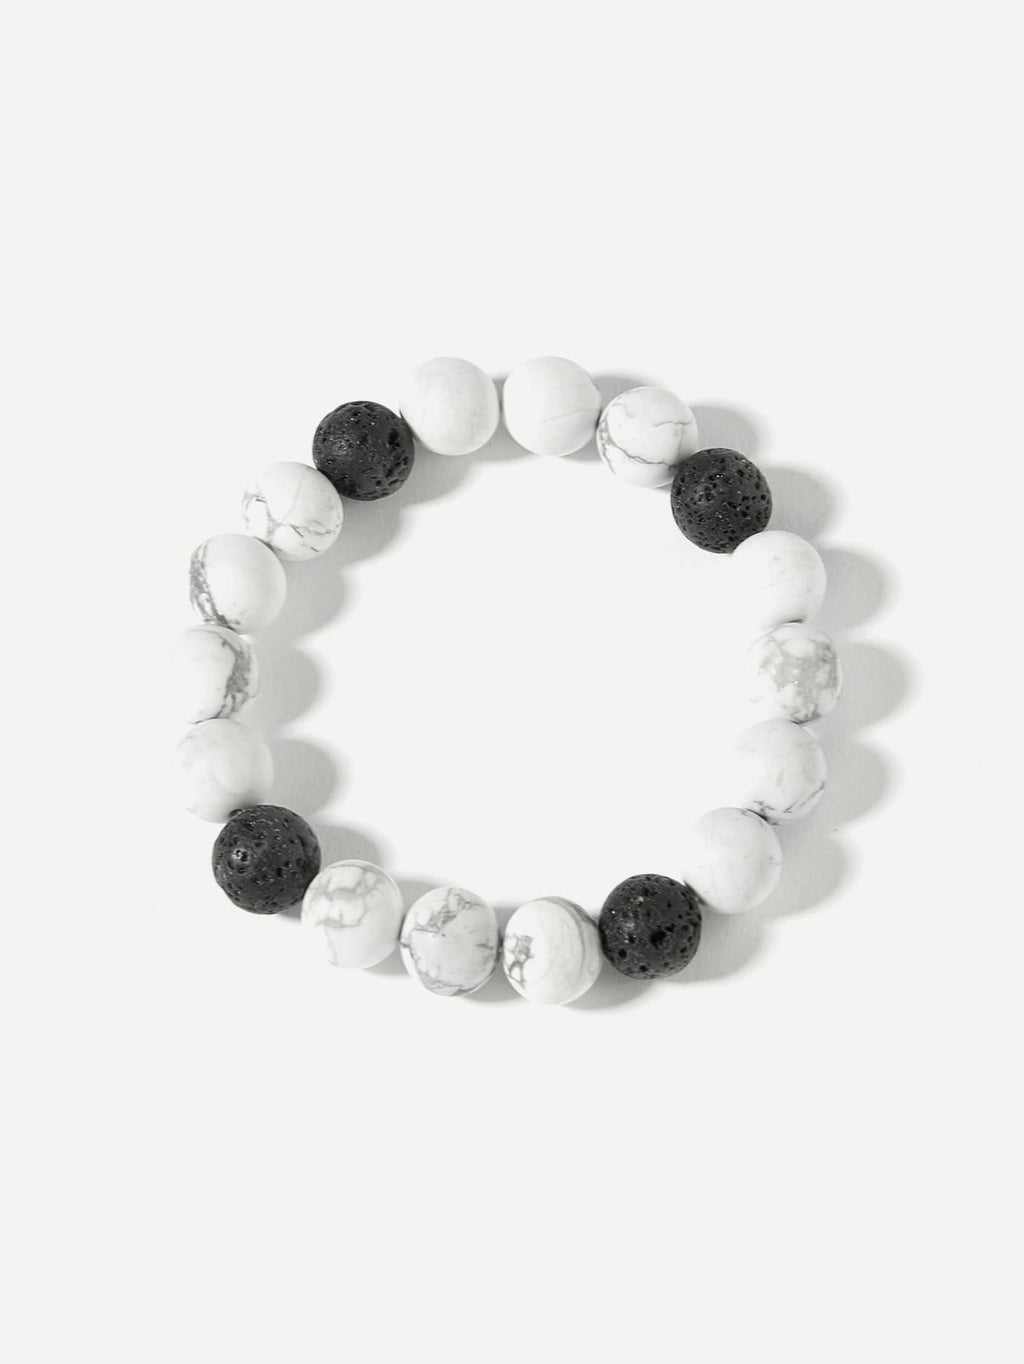 Zweifarbiges Beads Armband mit Marmormuster